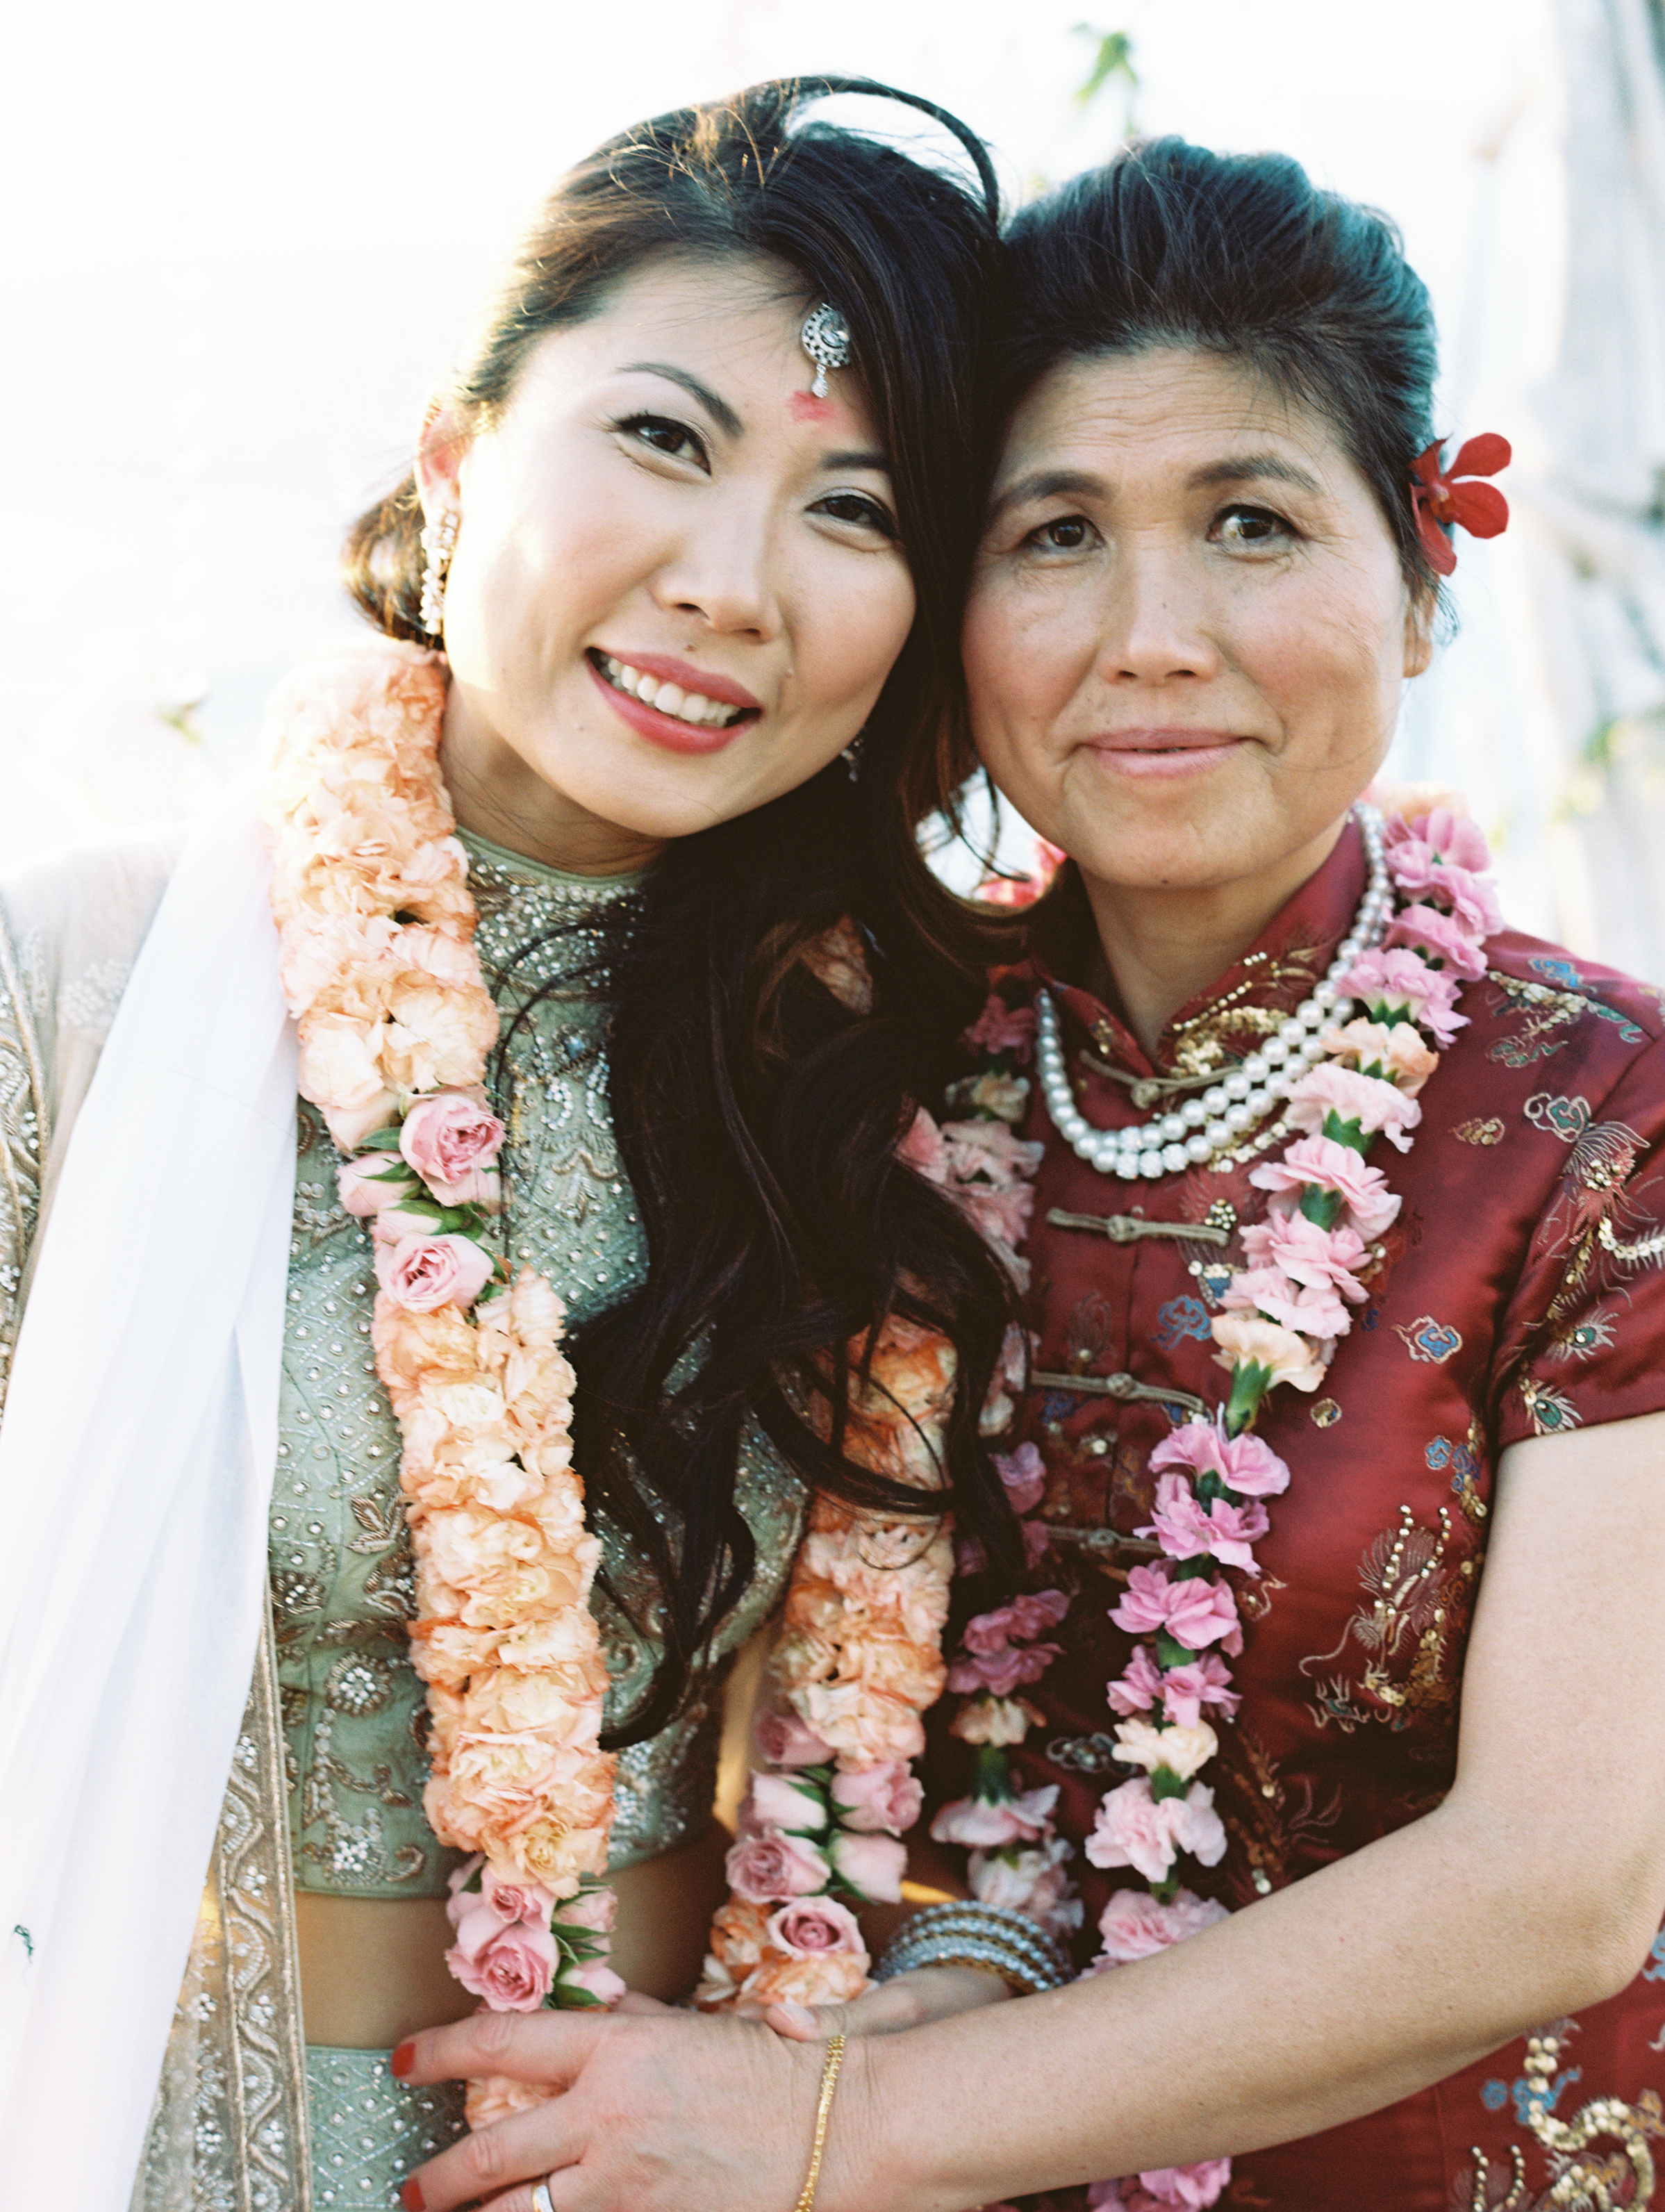 A Bride and Her Mom on Her Wedding Day